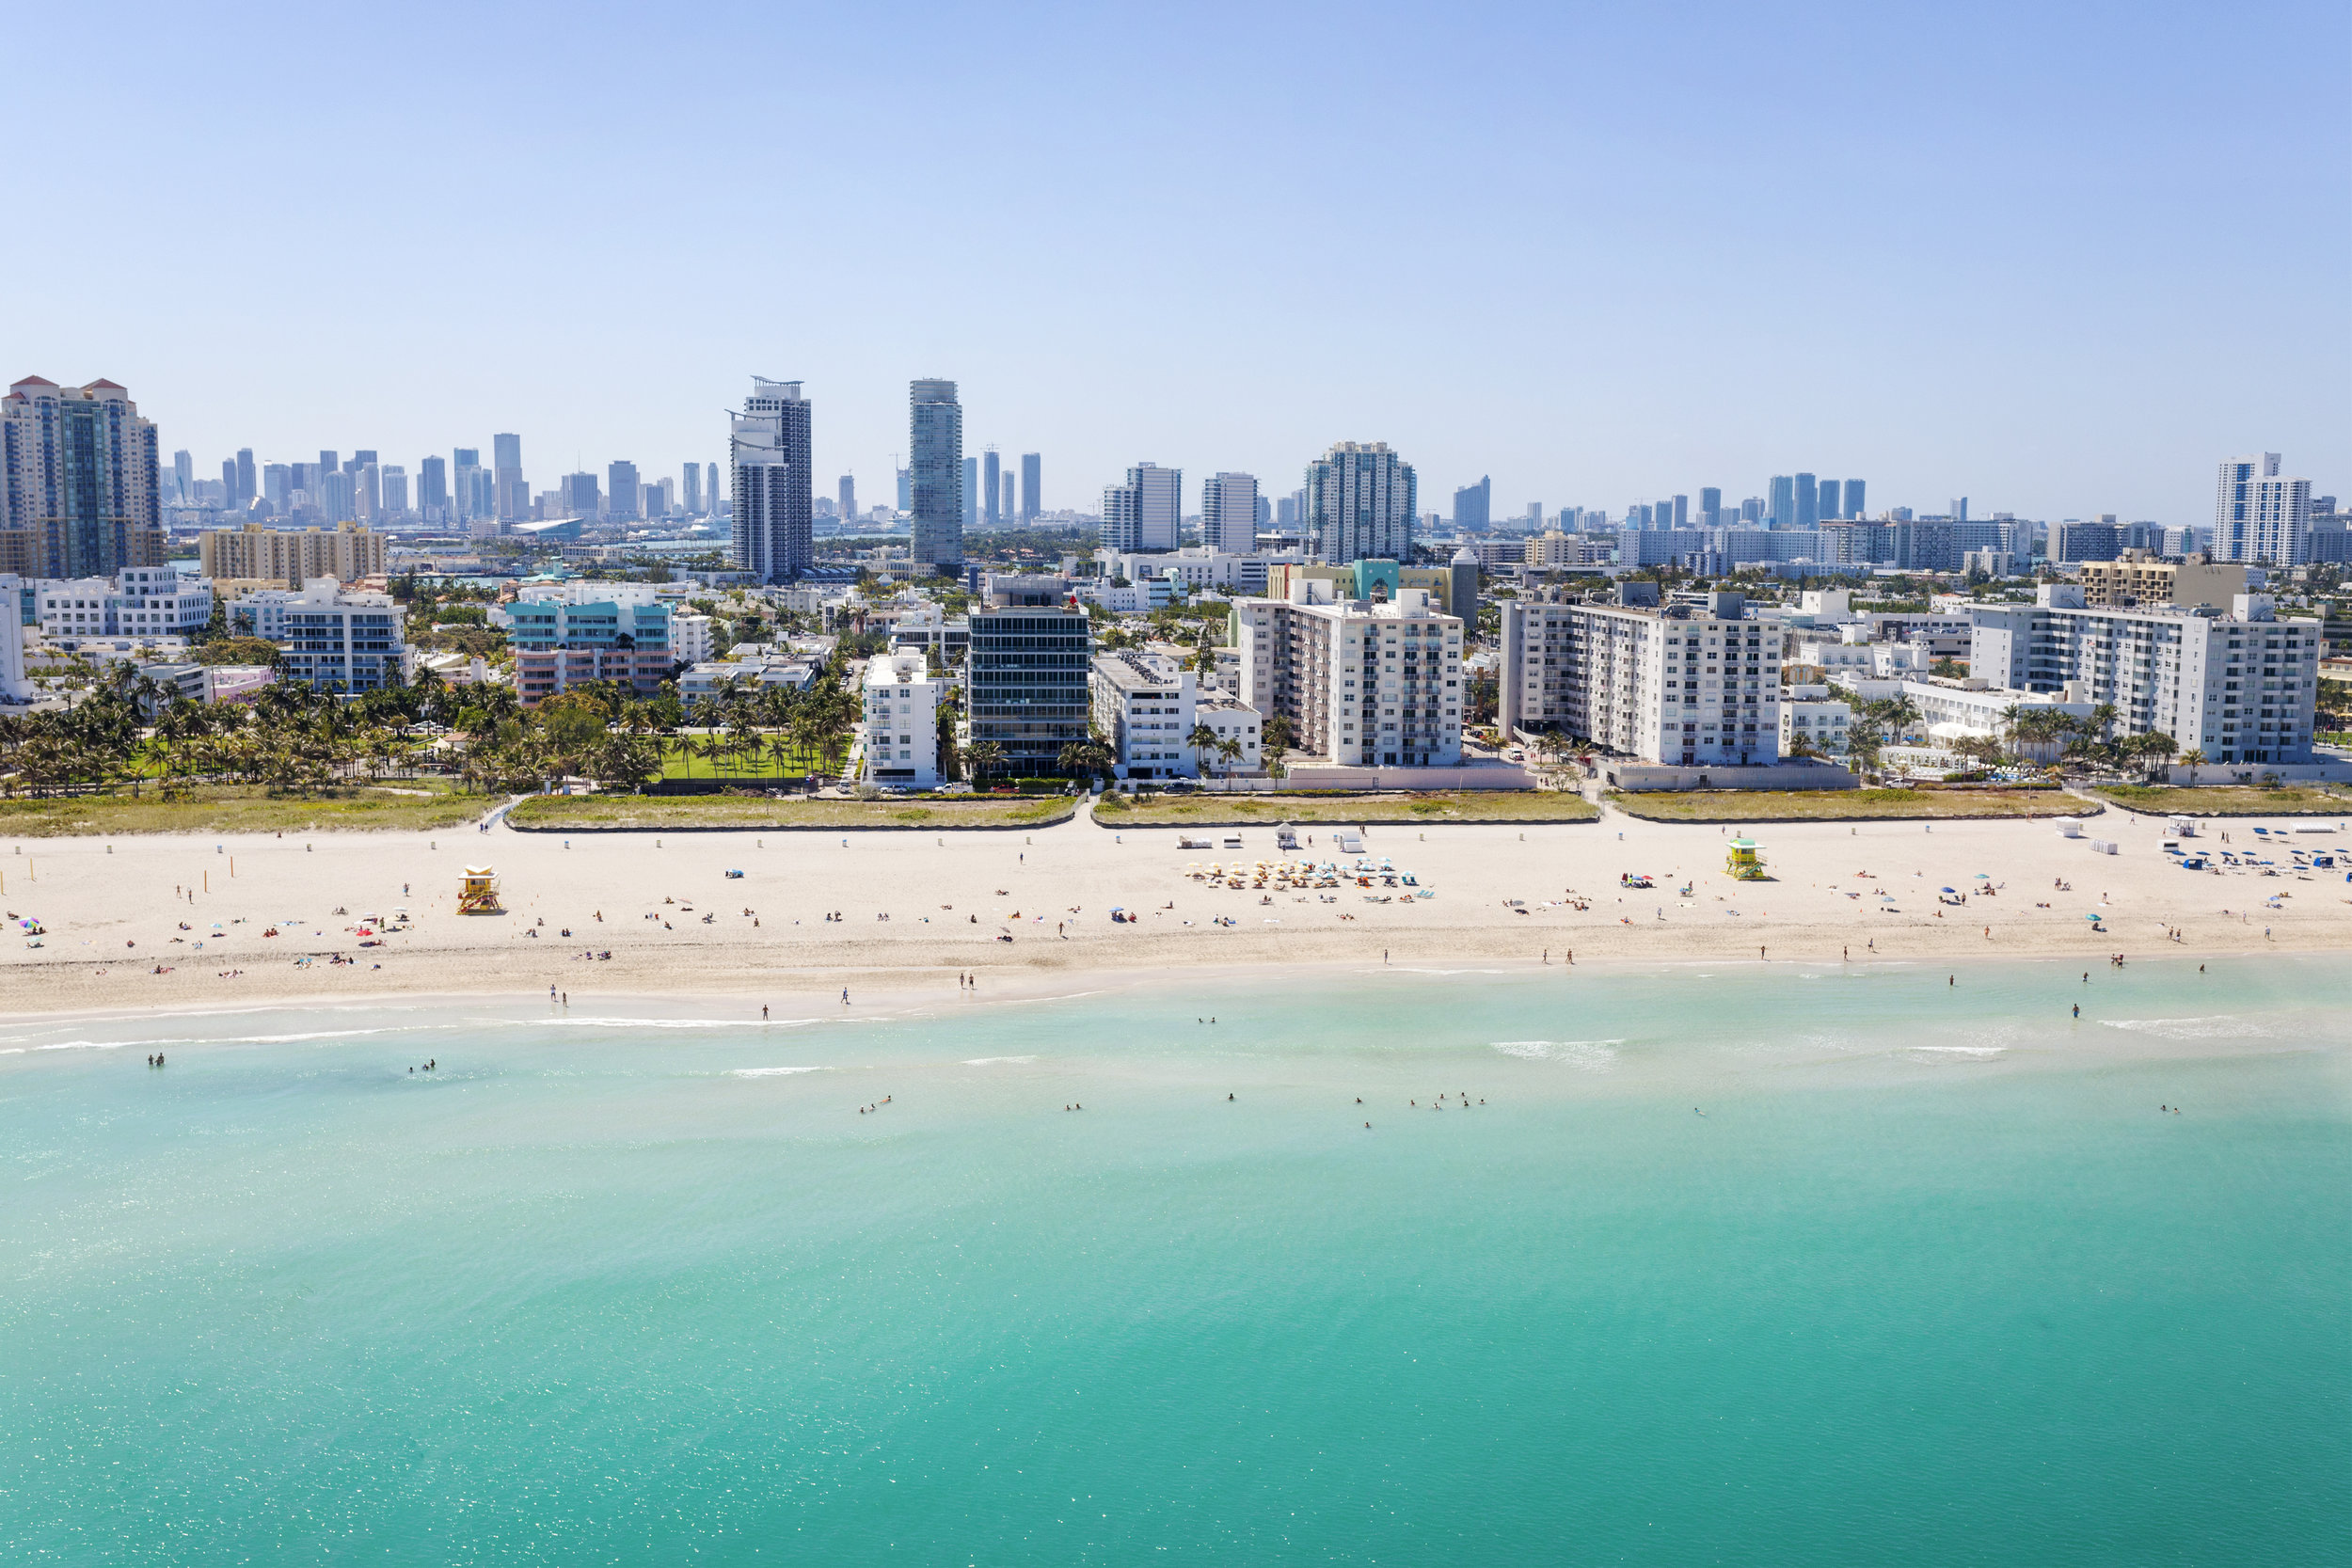 Miami Beach captured from a helicopter